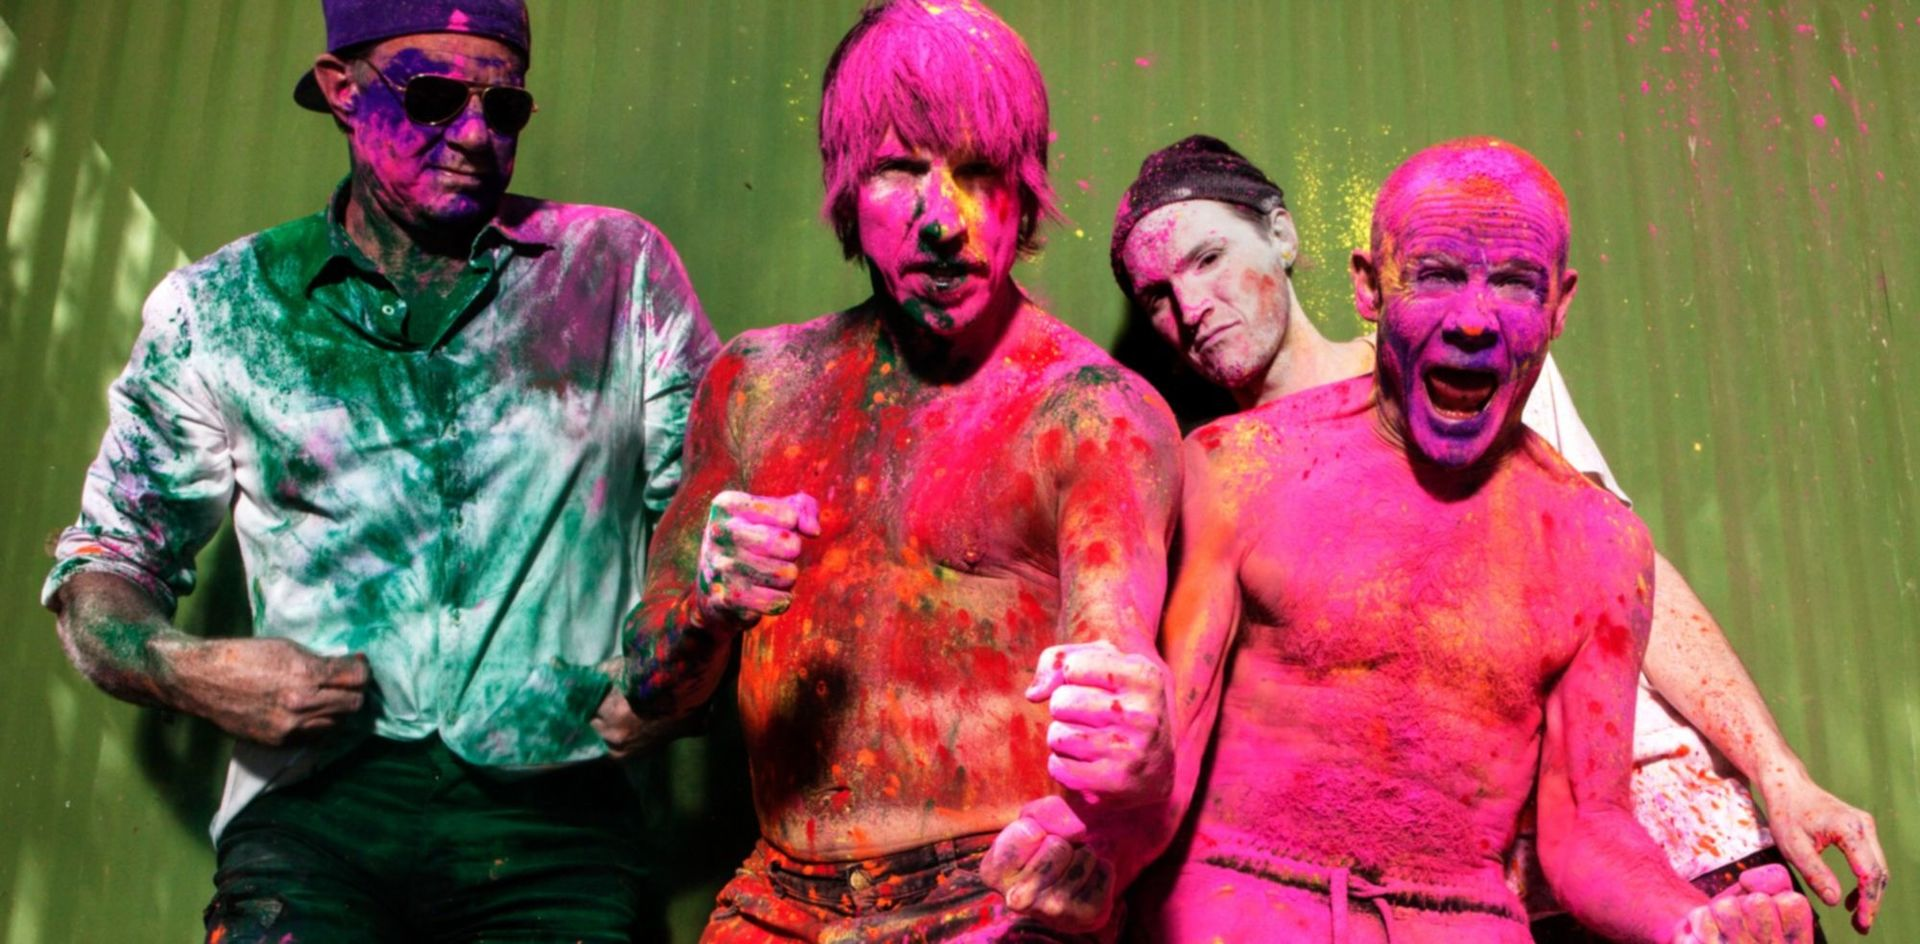 Red_Hot_Chili_Peppers_New_Press_Picture_2016_1